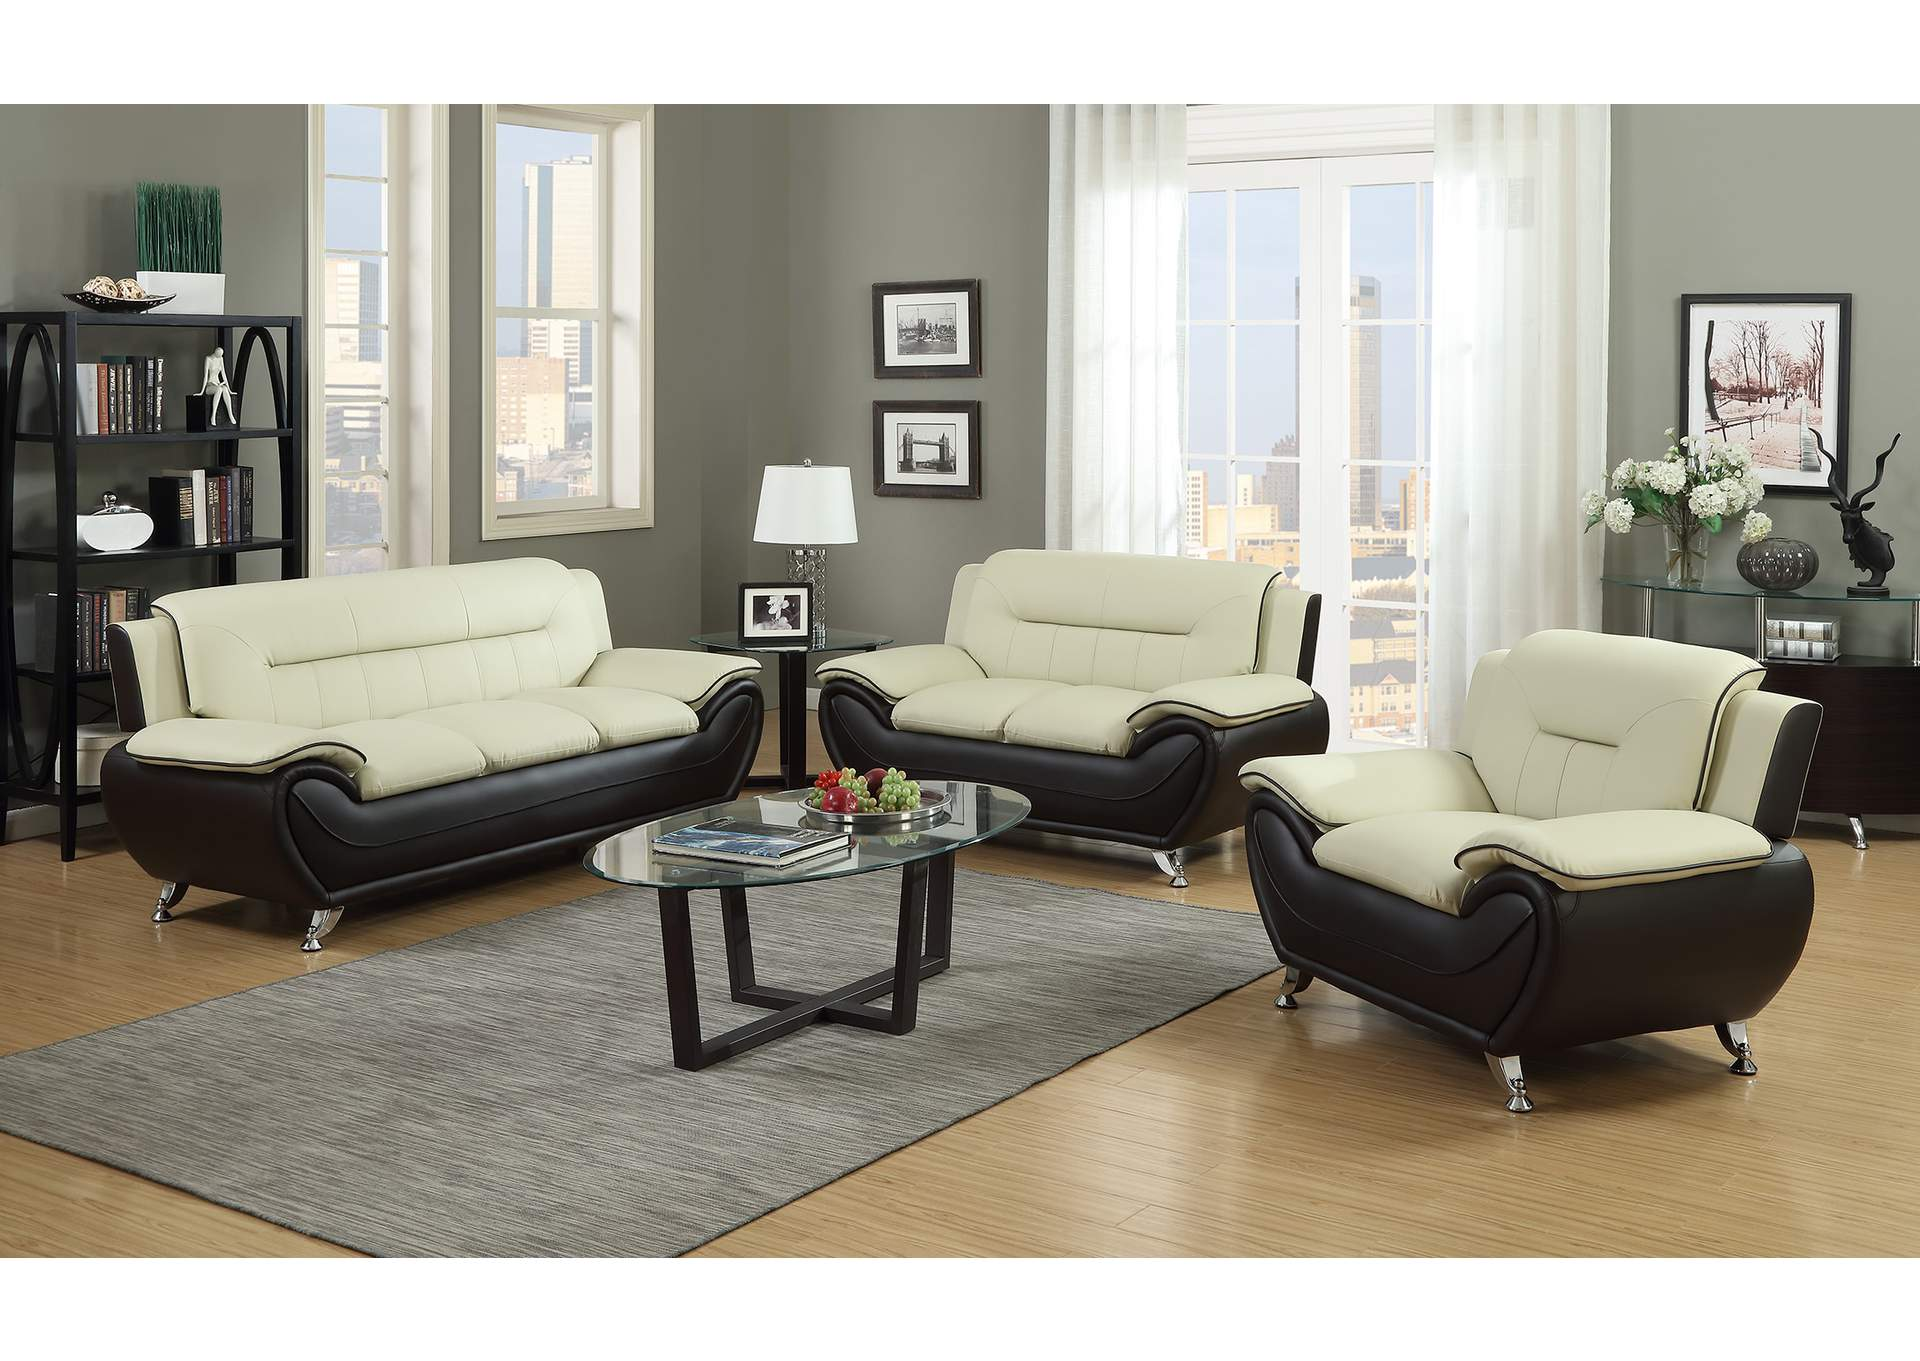 Beige & Brown Sofa, Loveseat & Chair,Global Trading